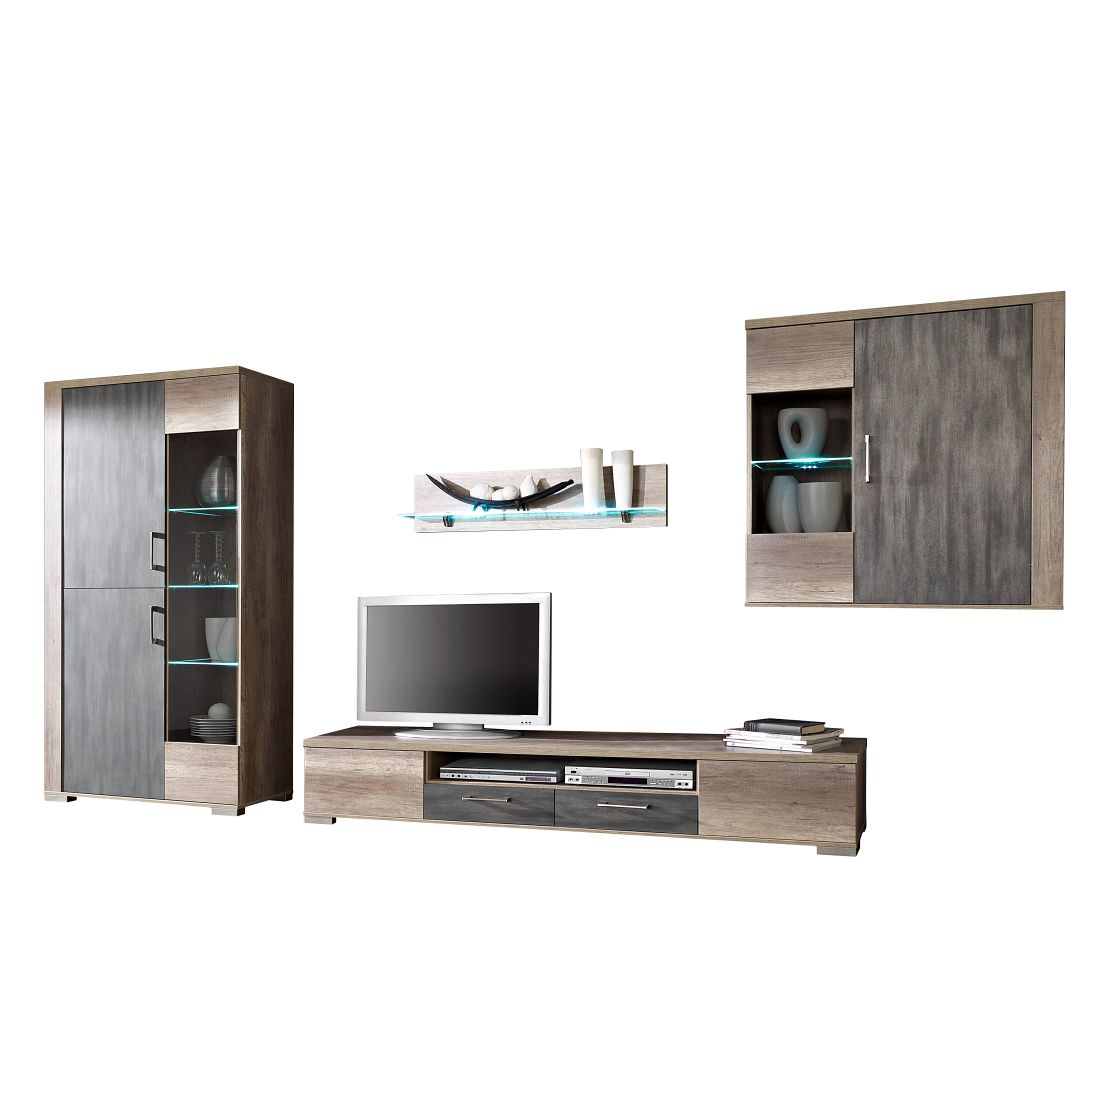 jadin archive. Black Bedroom Furniture Sets. Home Design Ideas